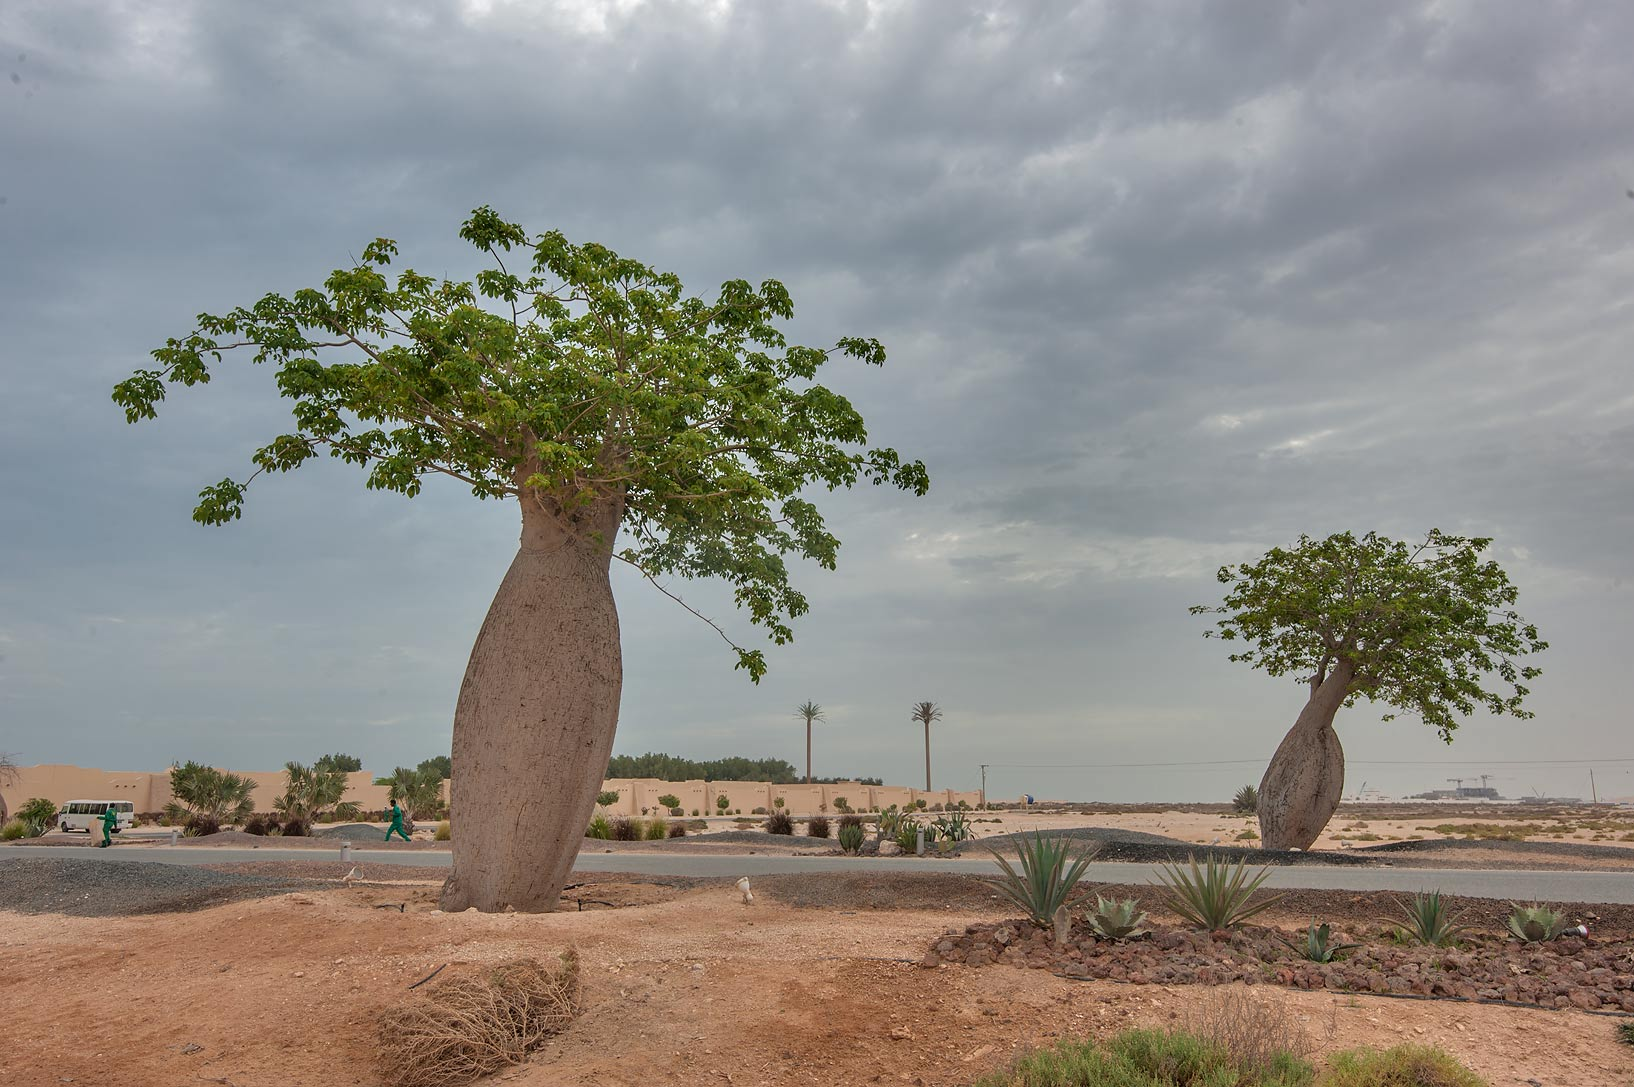 Silk floss trees (Chorisia speciosa, Ceiba...on north-eastern coast. Qatar